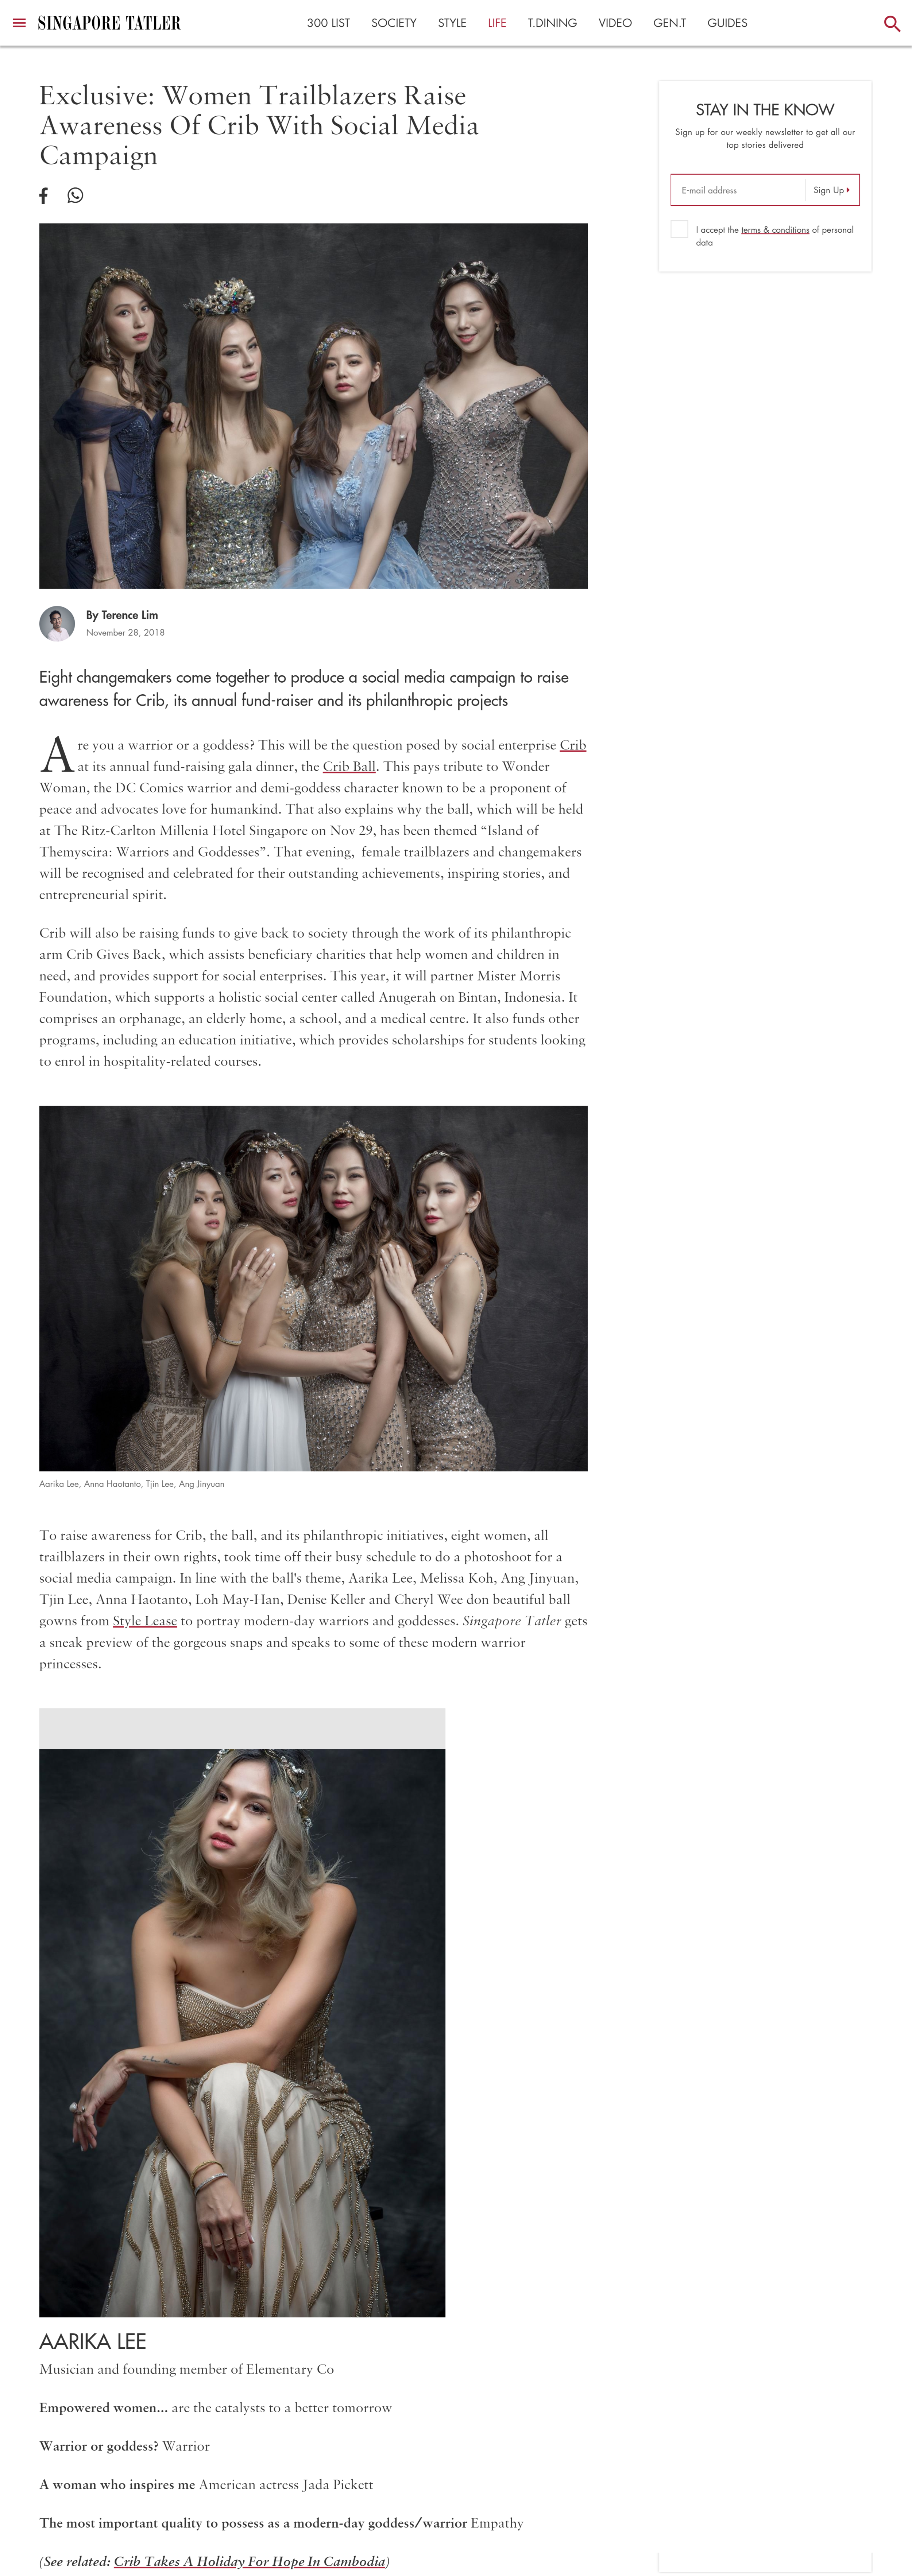 screencapture-sg-asiatatler-life-exclusive-women-trailblazers-raise-awareness-of-crib-with-social-media-campaign.png